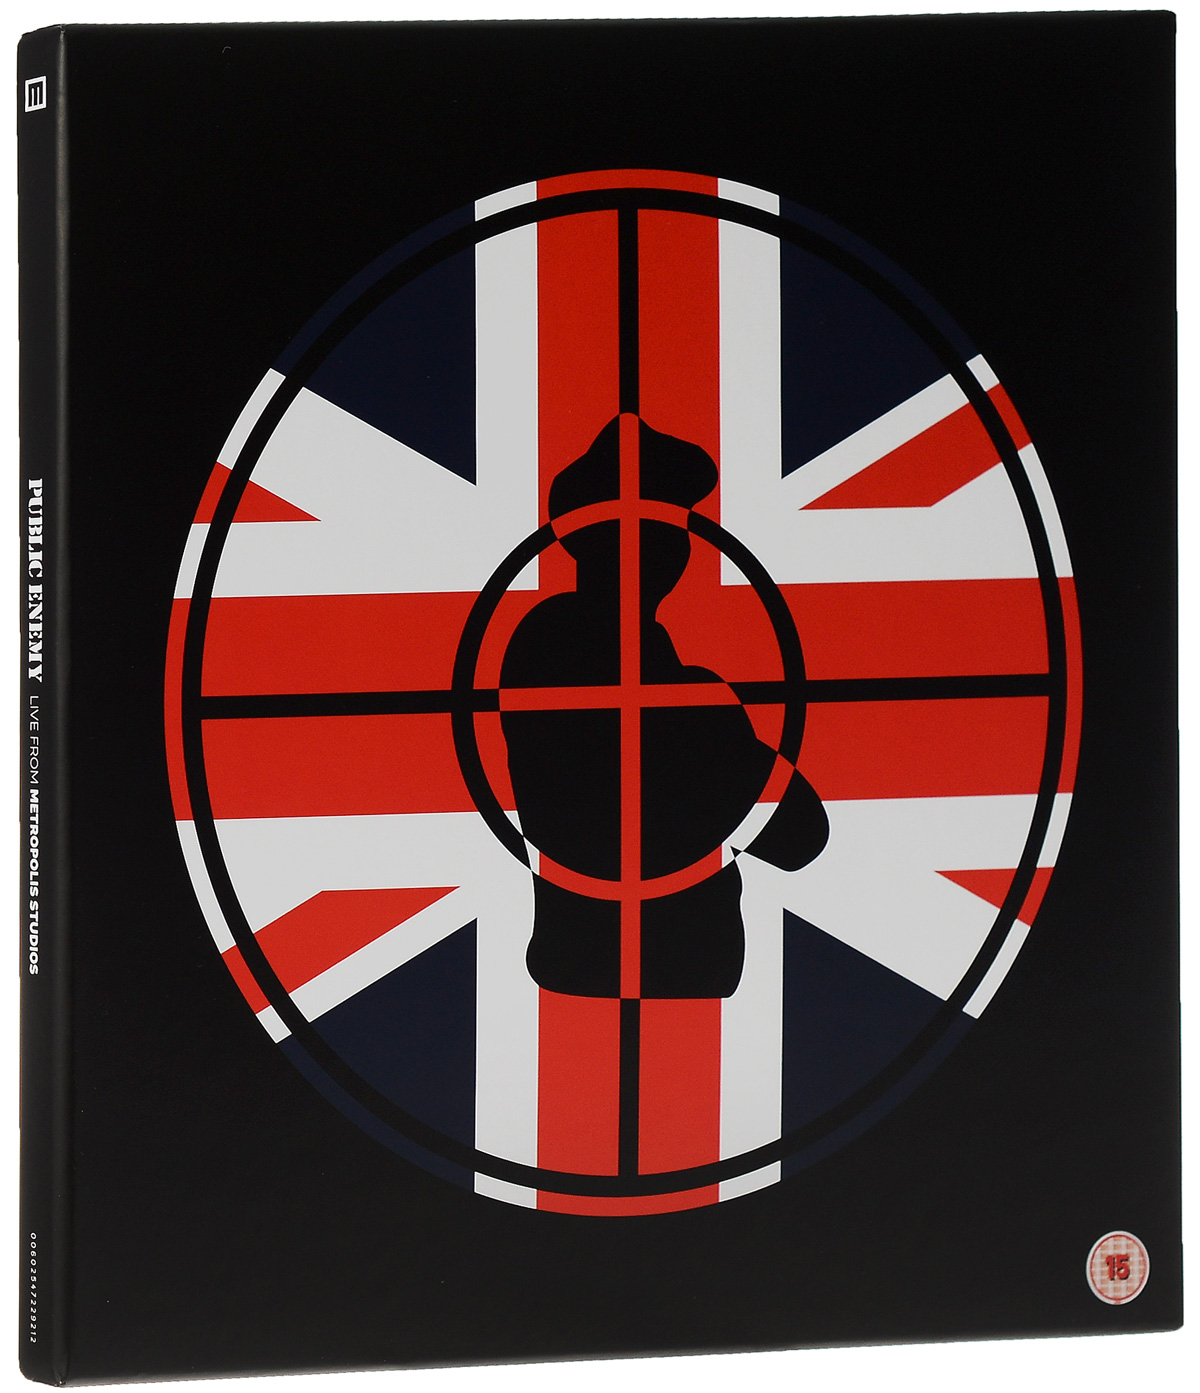 Public Enemy. Live From Metropolis Studios (2 LP)